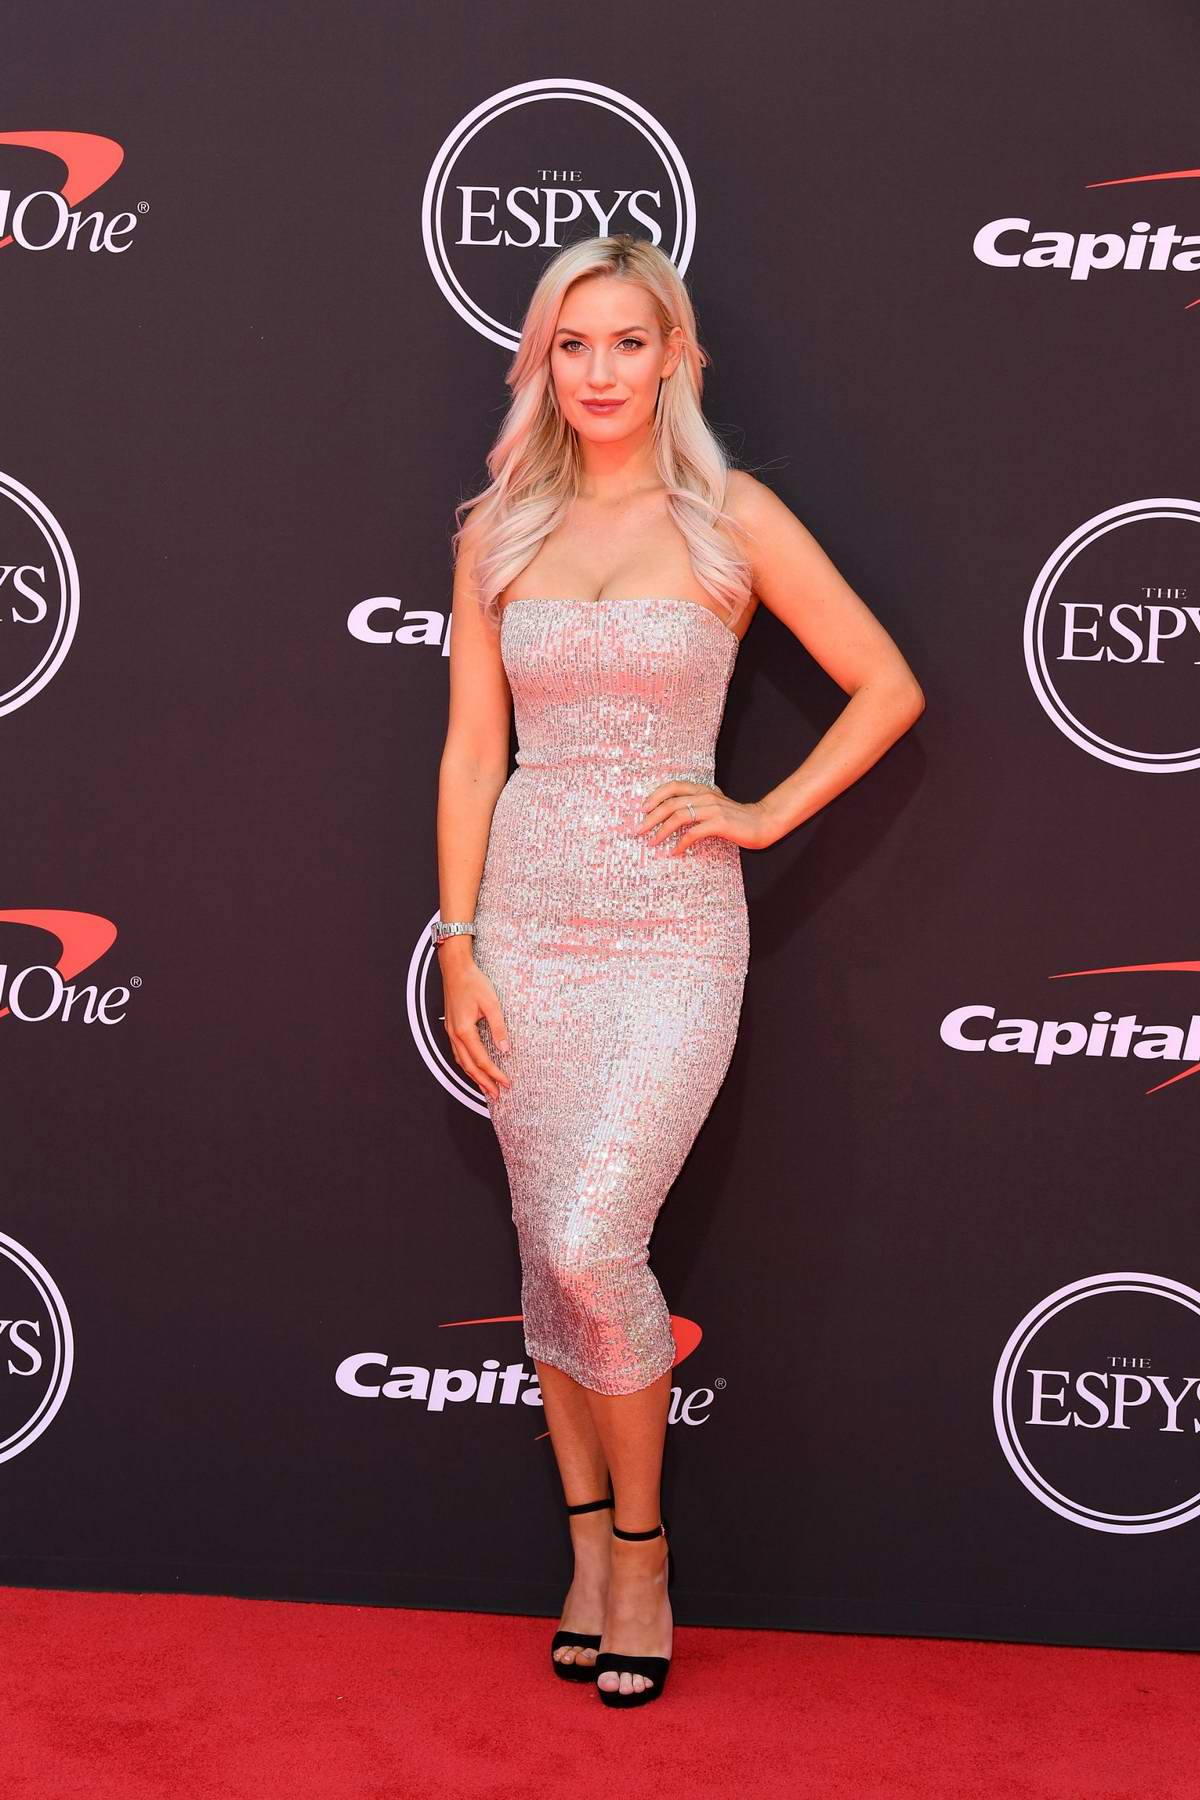 Paige Spiranac attends the 2019 ESPY Awards at the Microsoft Theatre in Los Angeles